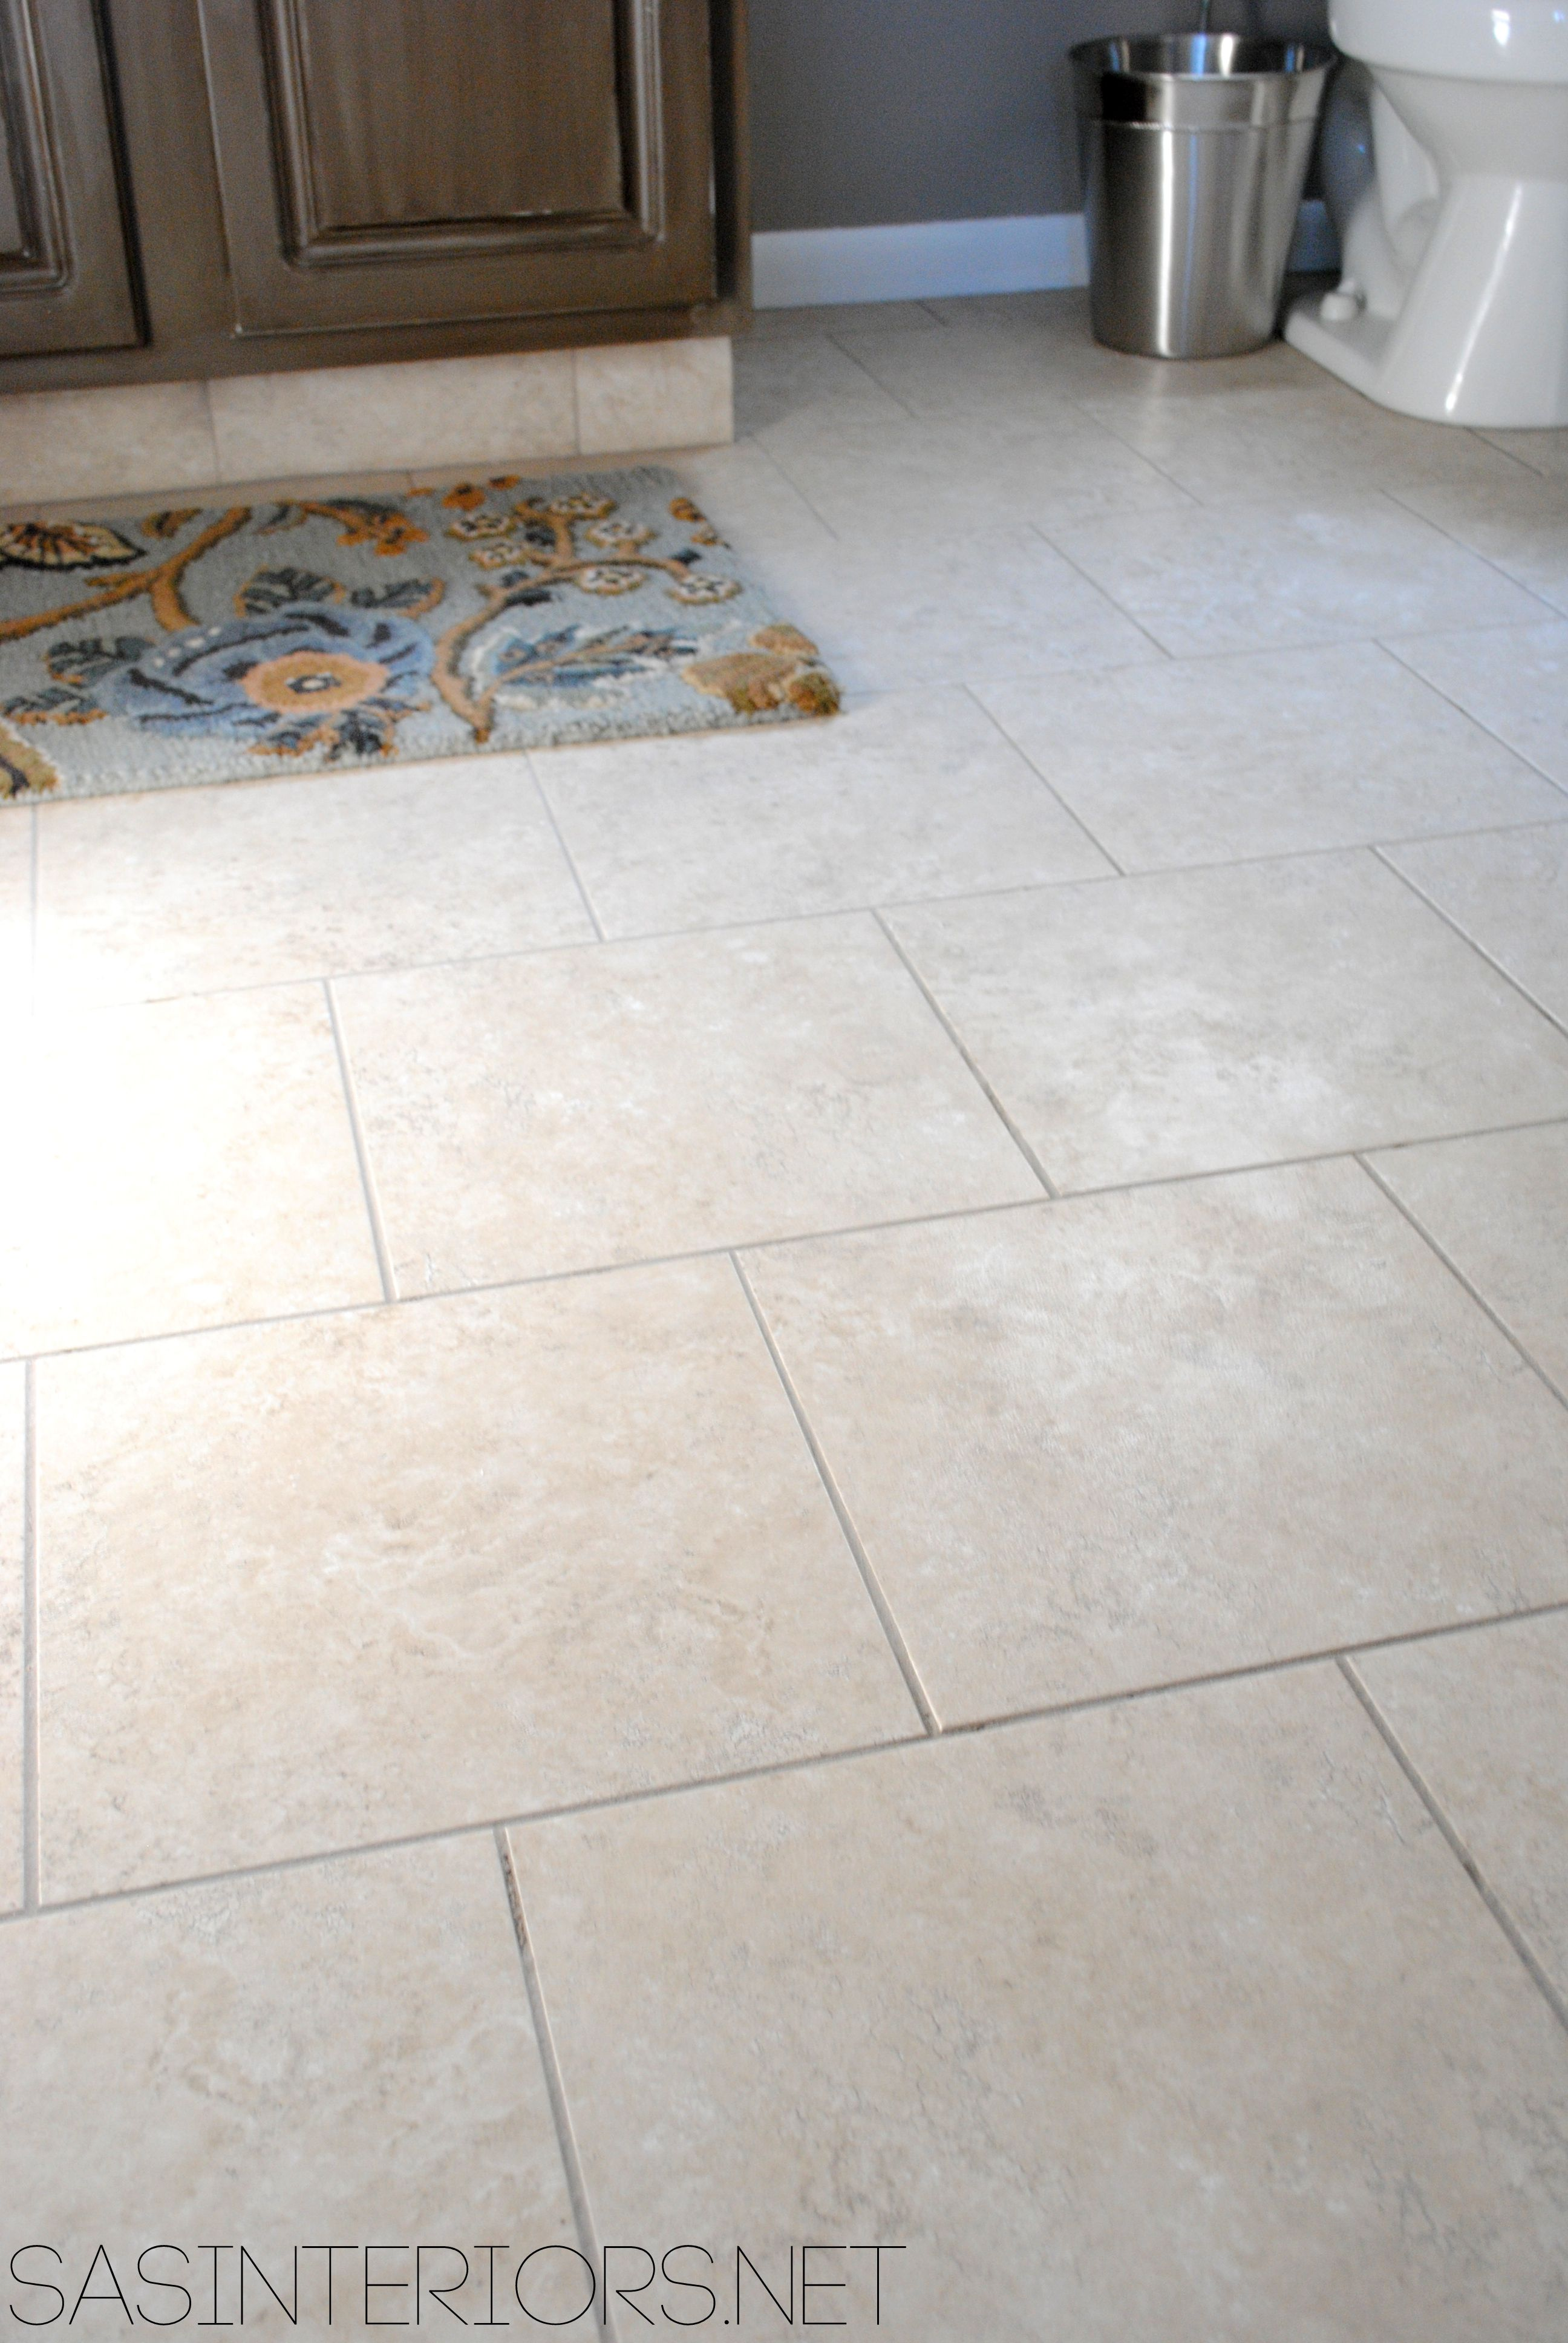 Post update groutable luxury vinyl tile an amazing alternative post update groutable luxury vinyl tile an amazing alternative to cermamic tile how dailygadgetfo Gallery